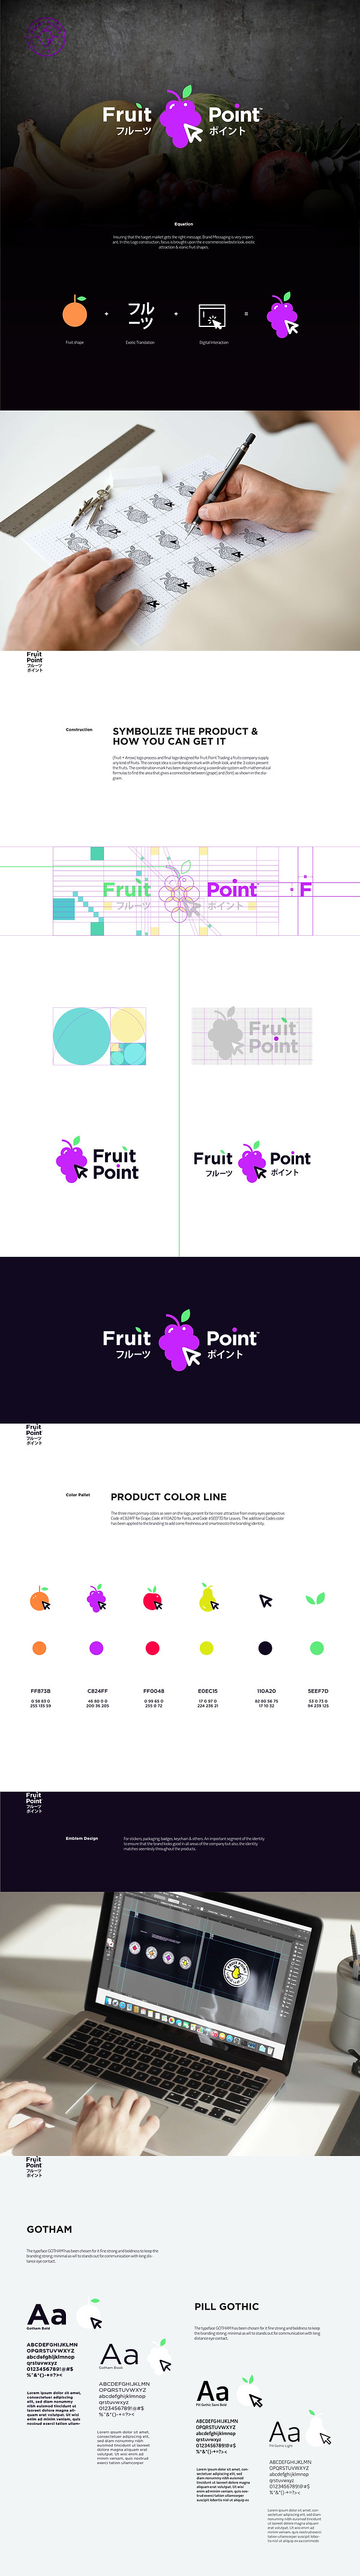 FRUIT POINT 6_compressed_page-0001.jpg